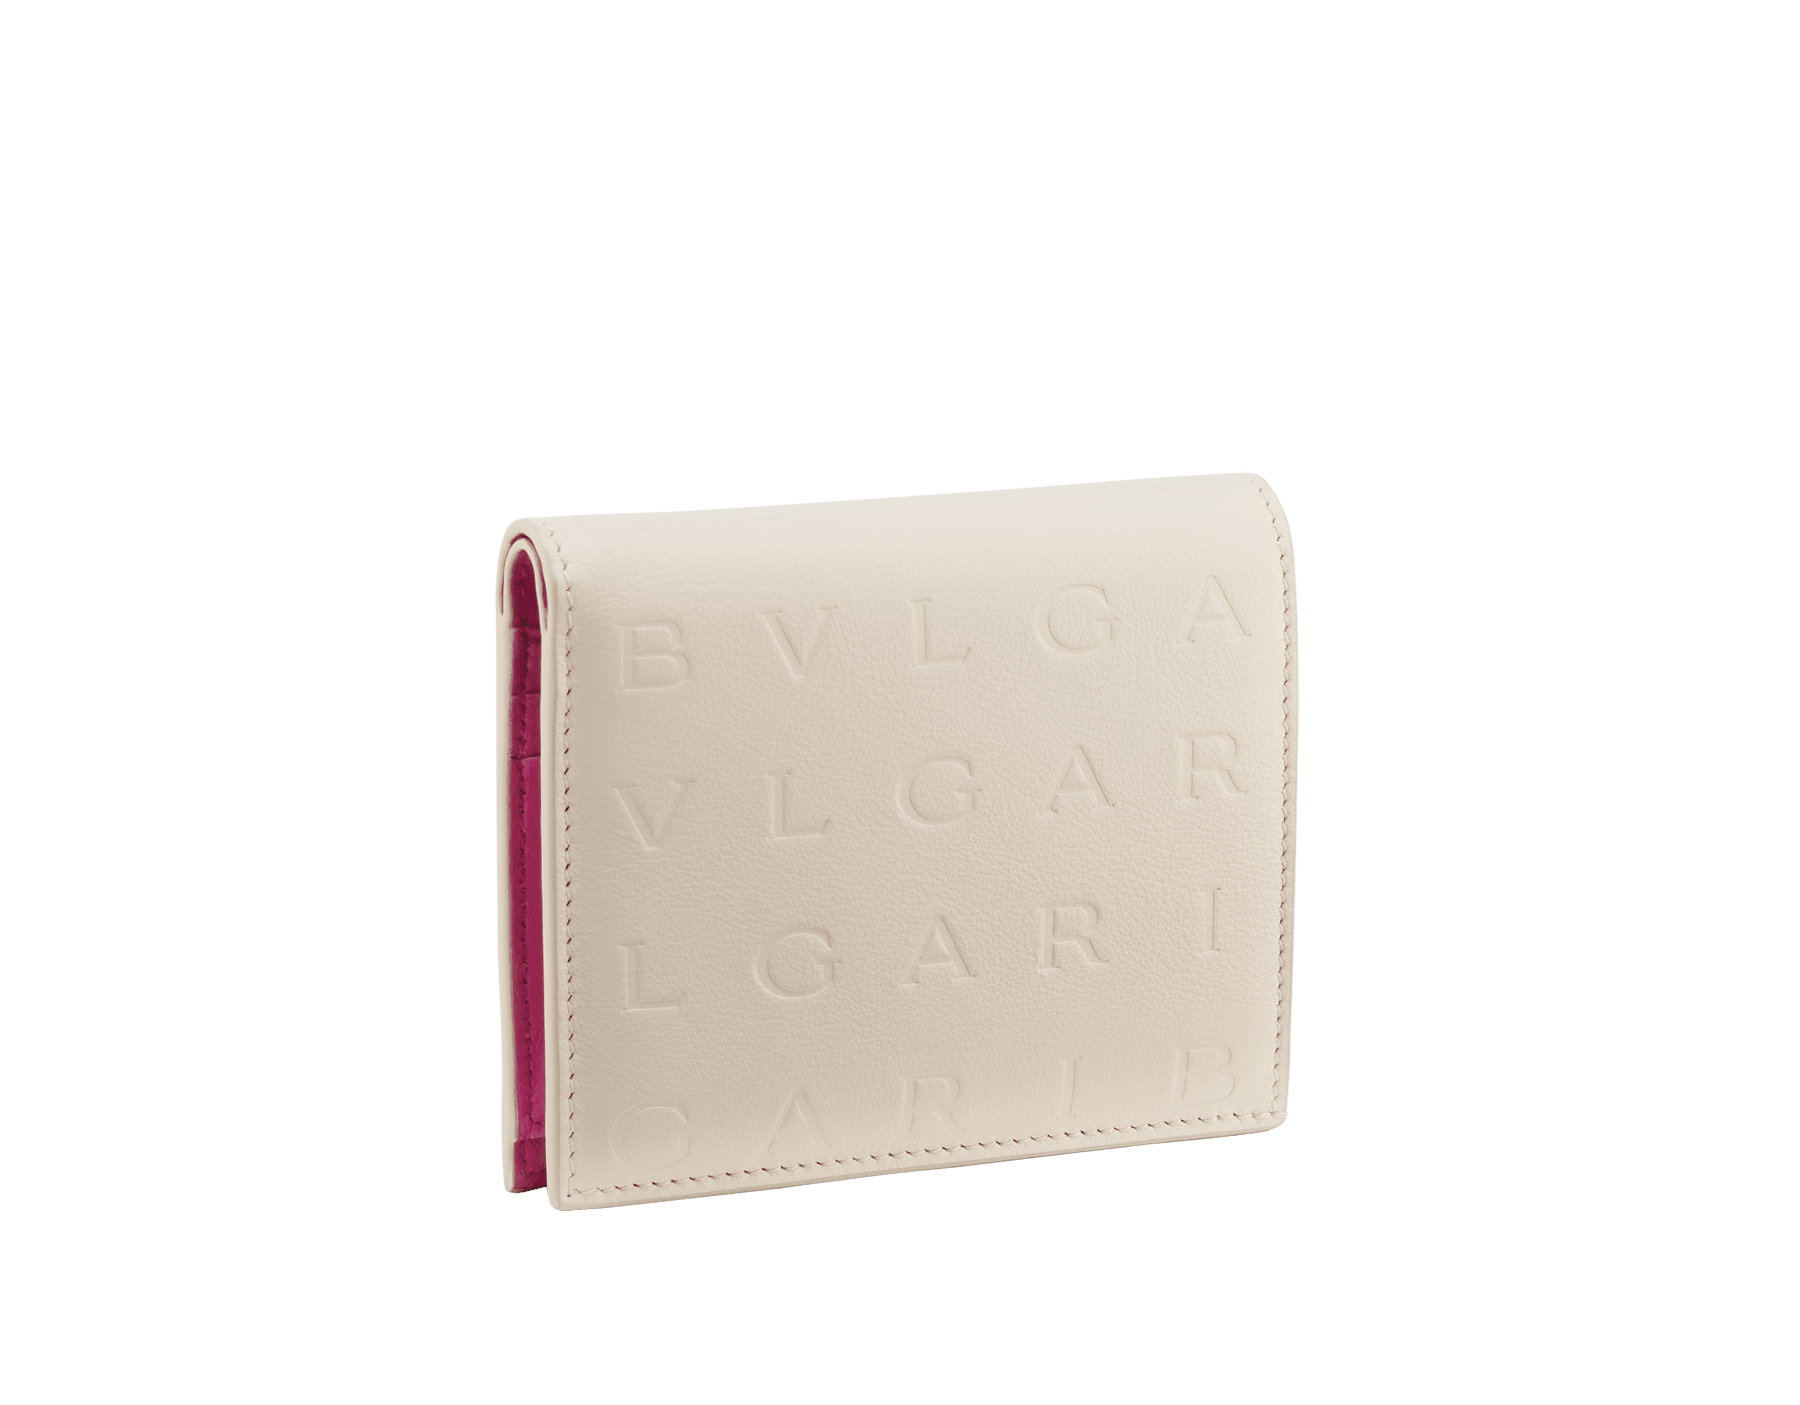 Bvlgari Logo compact wallet in Ivory Opal white calf leather with hot stamped Infinitum Bvlgari logo pattern and plain Pink Spinel nappa leather lining. Light gold-plated brass hardware BVL-COMPACTWLT image 1